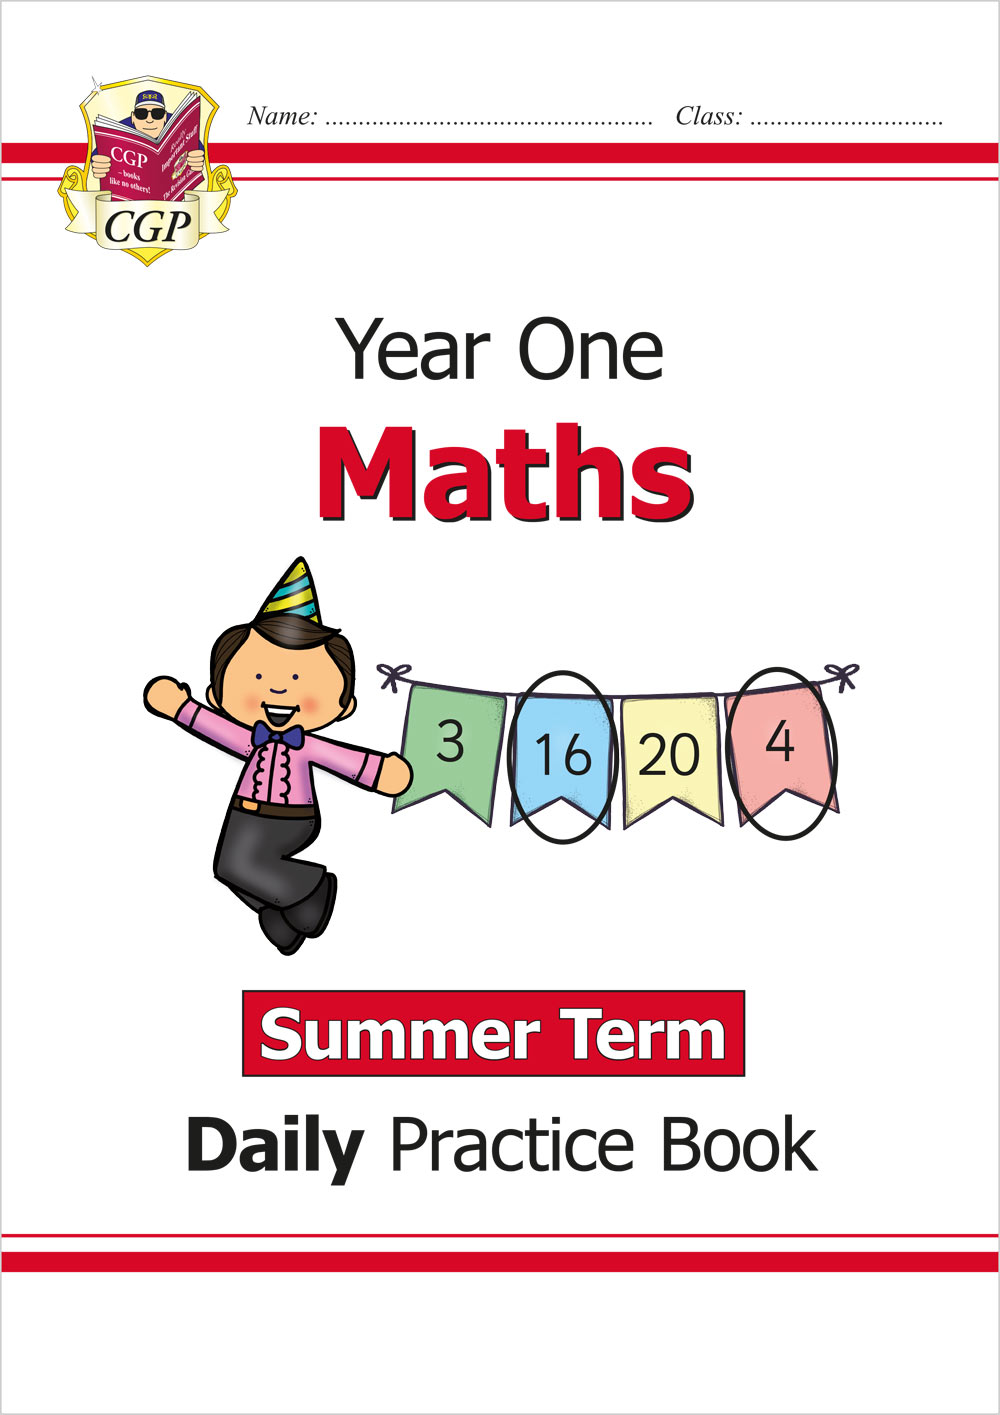 M1WSU11 - New KS1 Maths Daily Practice Book: Year 1 - Summer Term